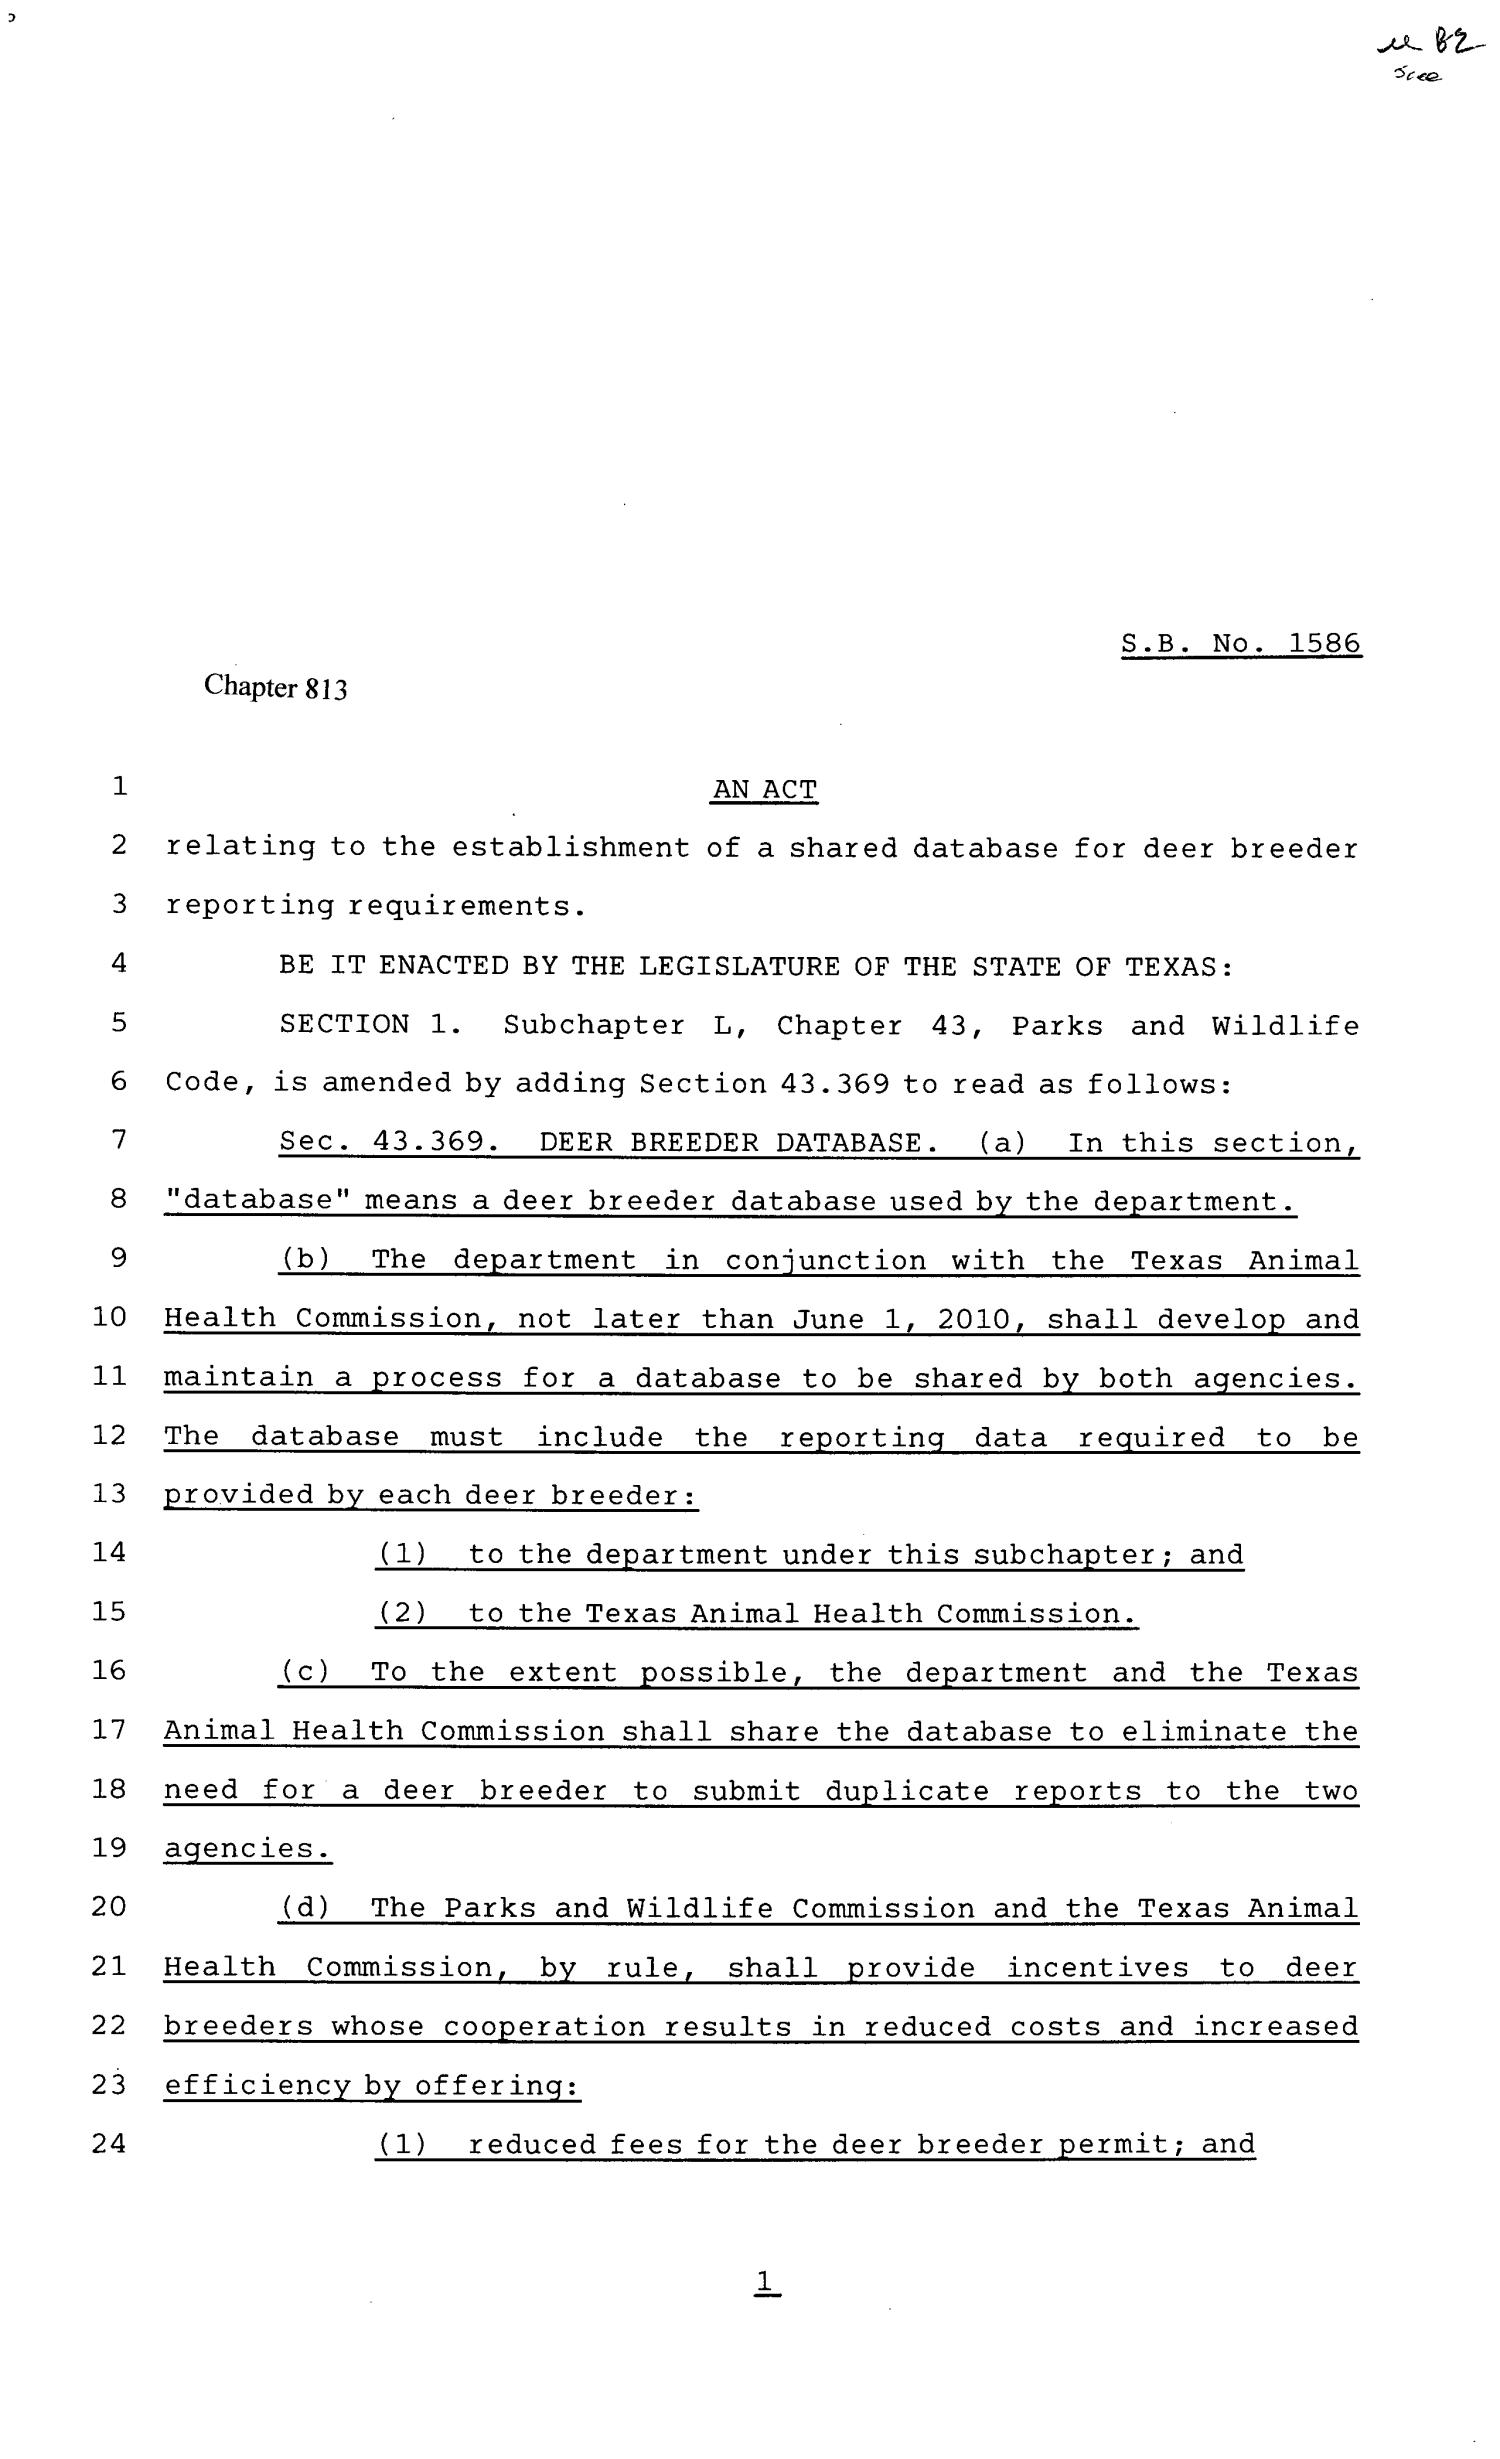 81st Texas Legislature, Senate Bill 1586, Chapter 813                                                                                                      [Sequence #]: 1 of 3